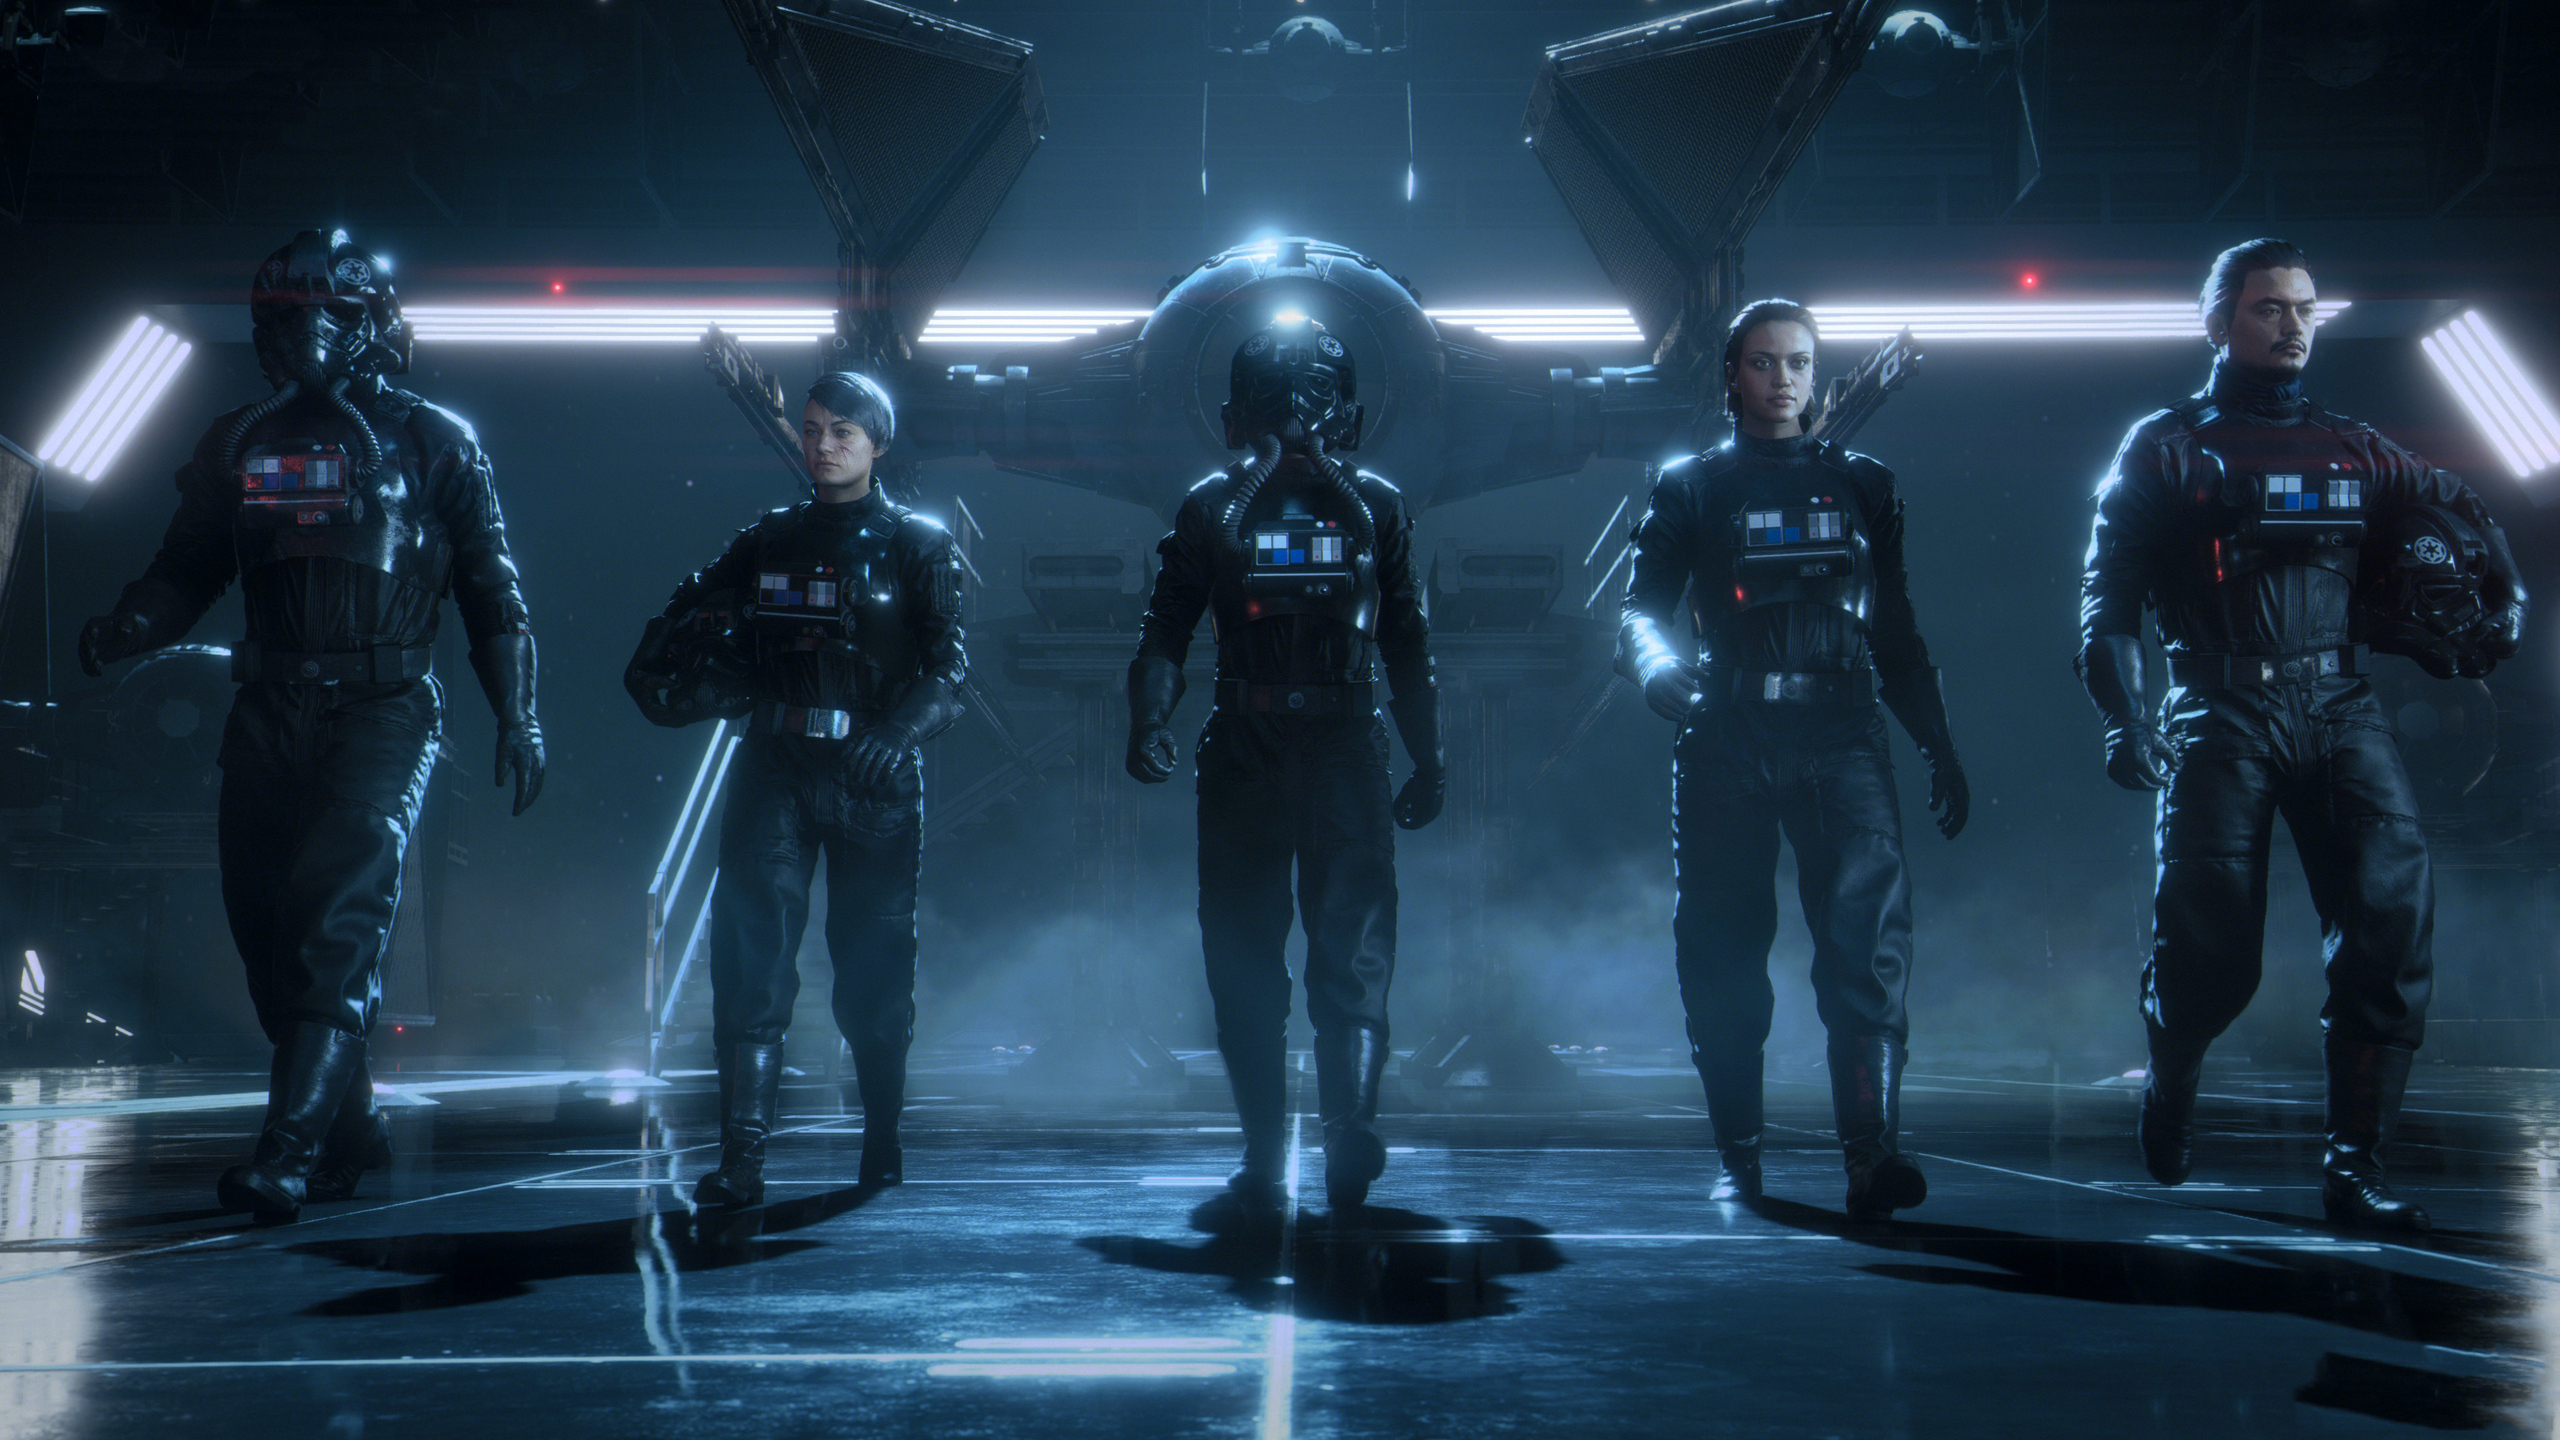 2560x1440 Star Wars Squadrons 2021 4k 1440p Resolution Hd 4k Wallpapers Images Backgrounds Photos And Pictures Wallpaper star wars squadrons 2021 game